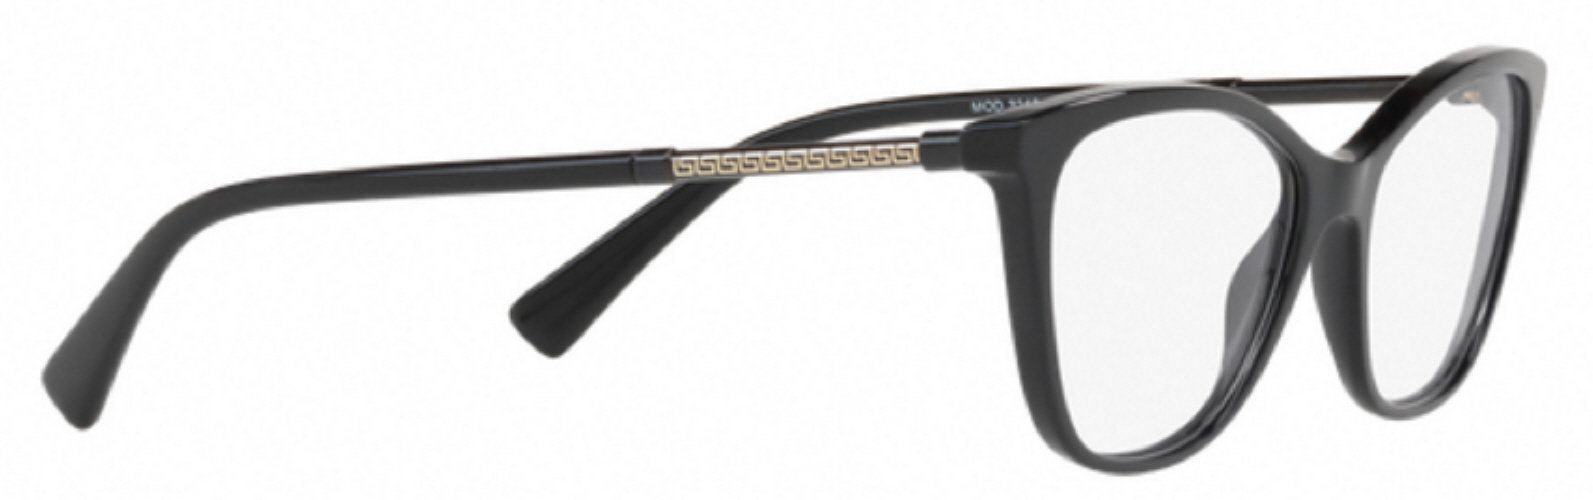 765e468af419 3pm view of Versace Eyeglasses - FUN ABOUT TOWN CAT EYE VE3248 GB1 52 BLACK  CLEAR